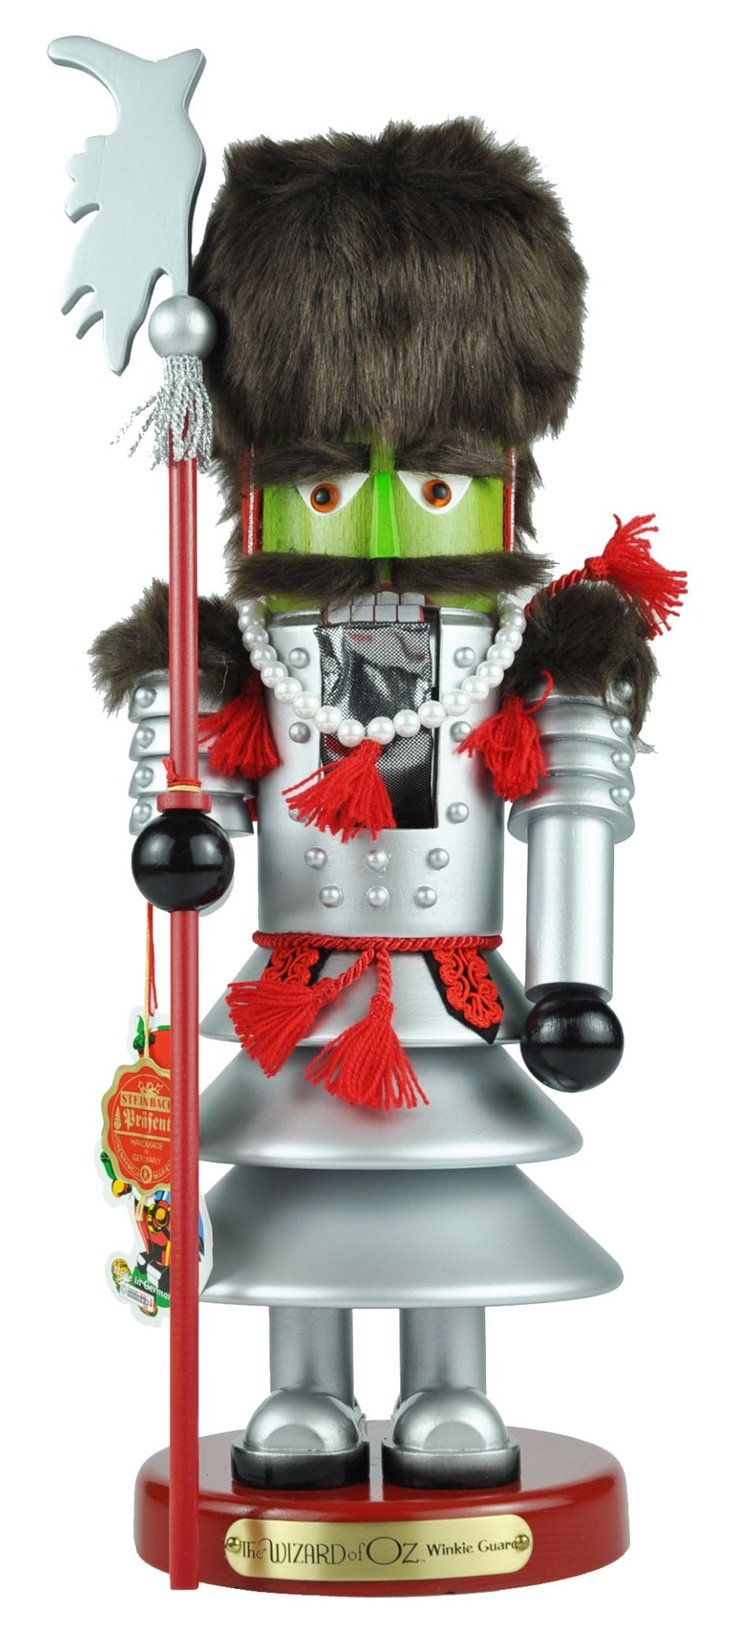 Wizard of oz christmas decorations uk - Wizard Of Oz Guard